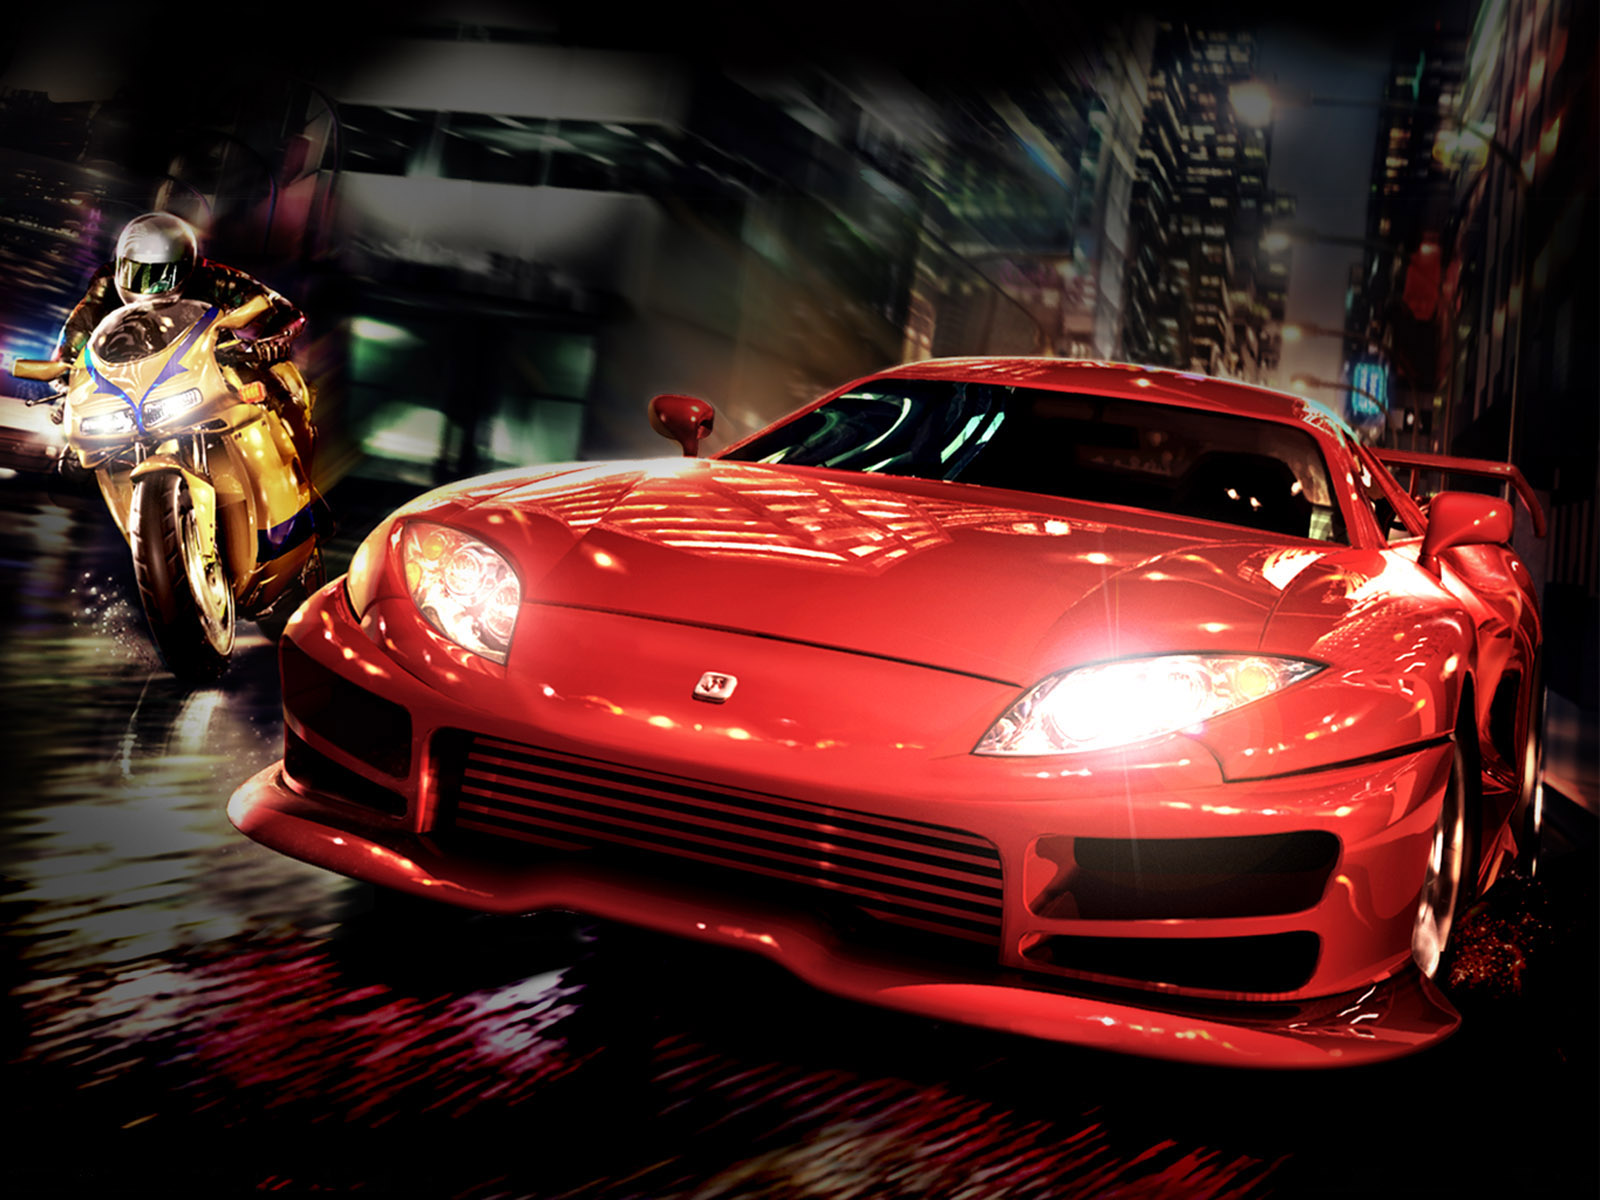 X Bike Vs Red Car Desktop Pc And Mac Wallpaper